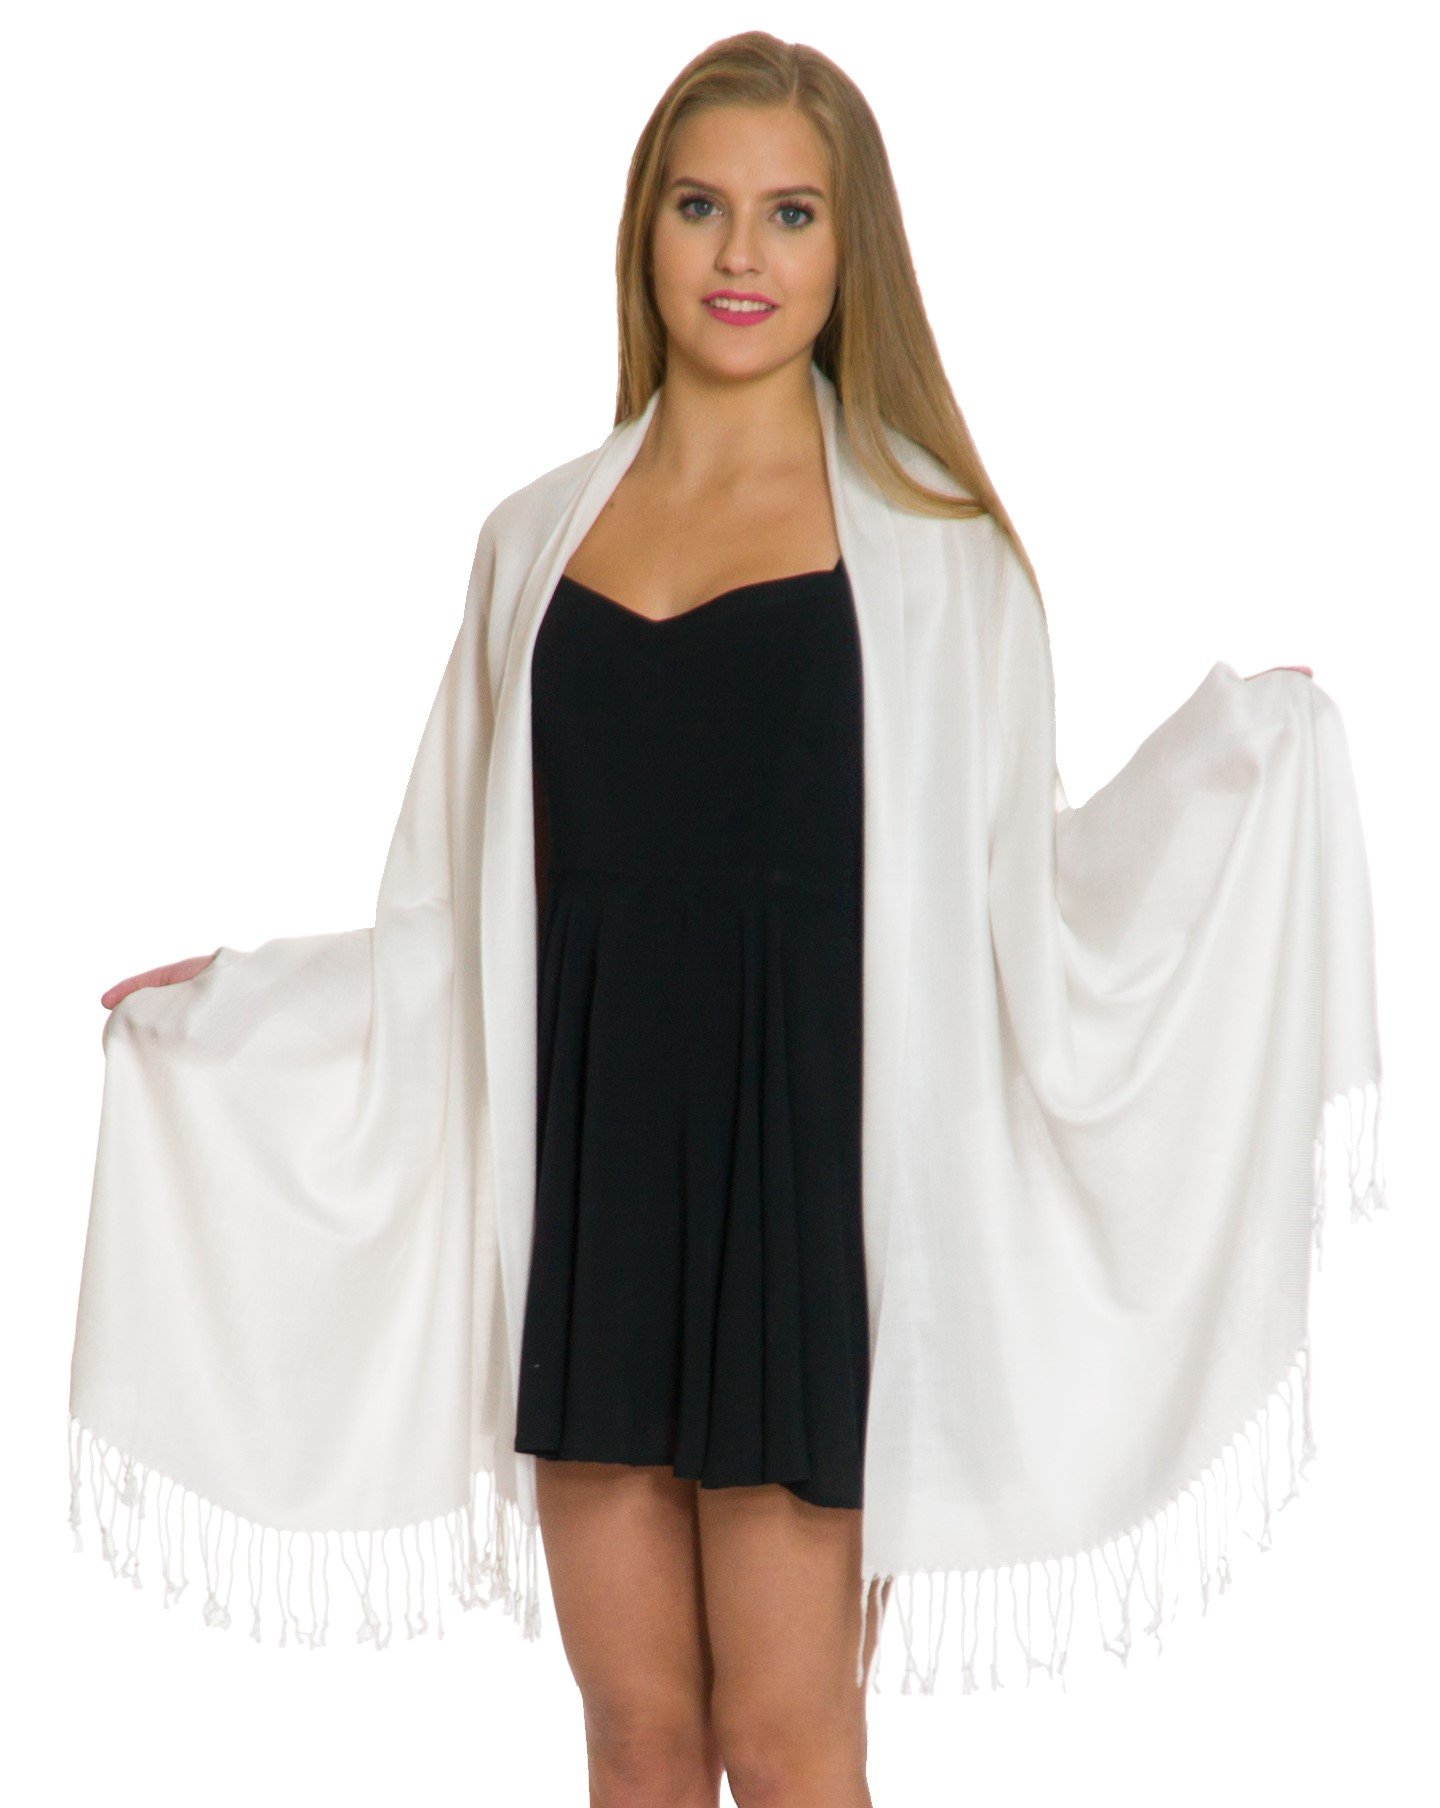 Pashmina Shawls and Wraps - Large Scarfs for Women - Party Bridal Long Fashion Shawl Wrap with Fringe by Petal Rose Off White by Petal Rose